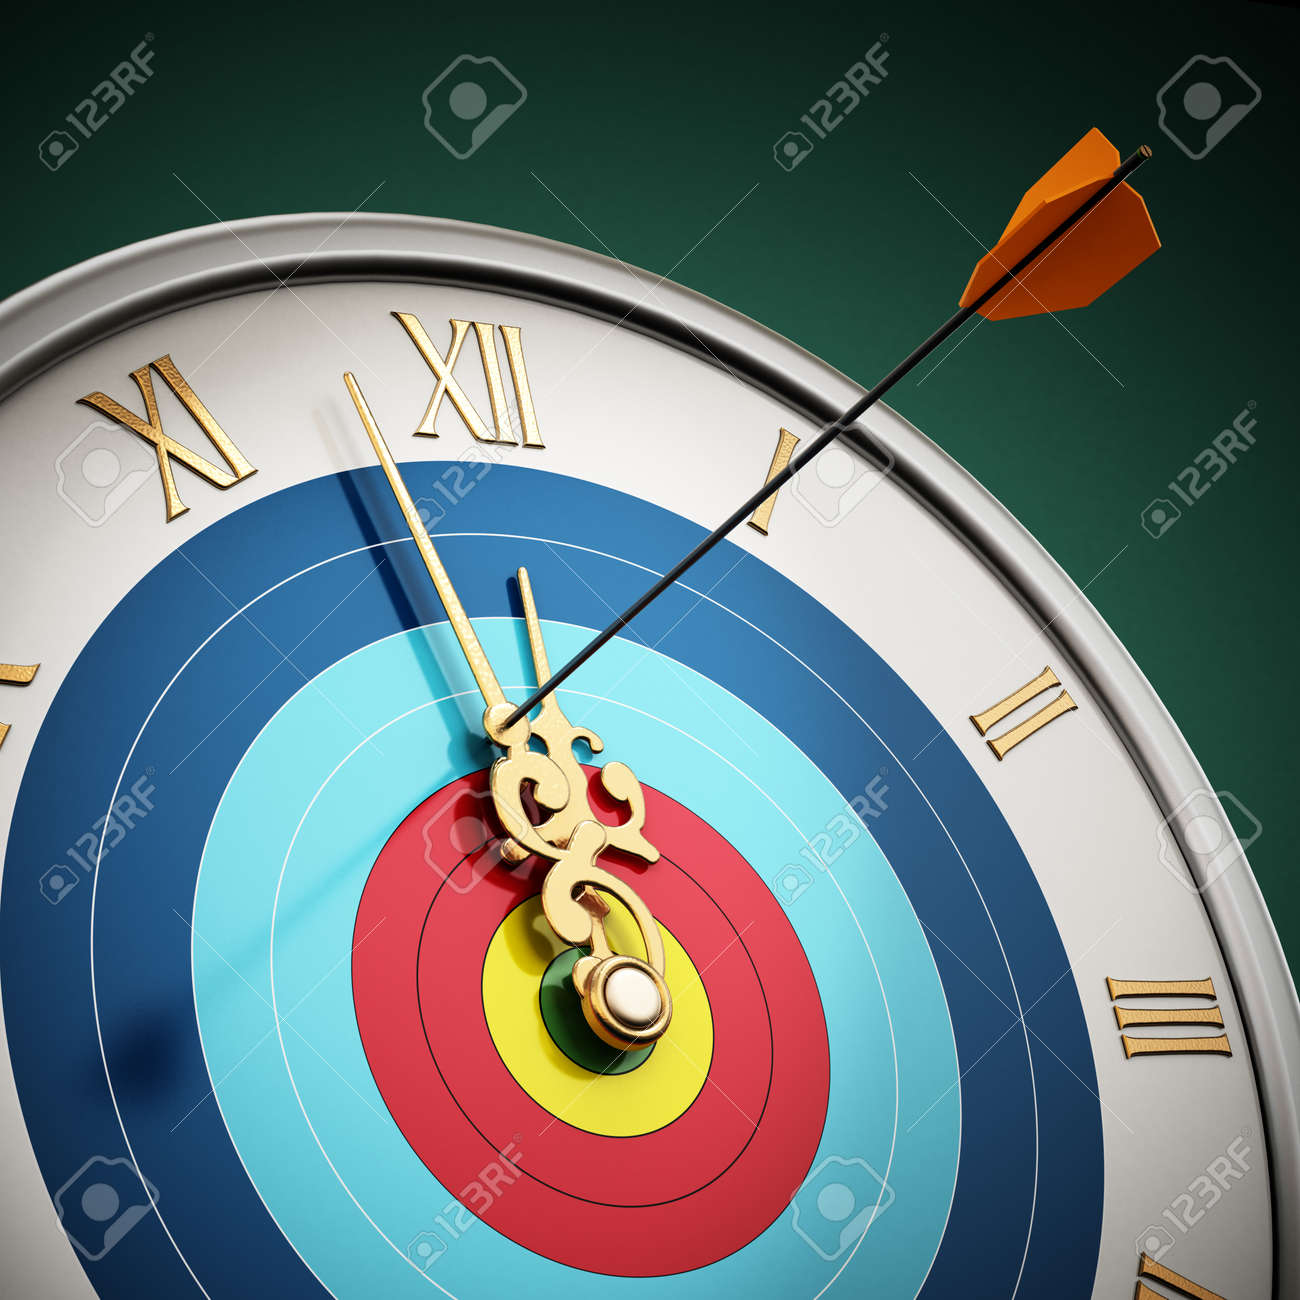 Arrow hit at clock hand stopping the time. 3D illustration. - 173109654